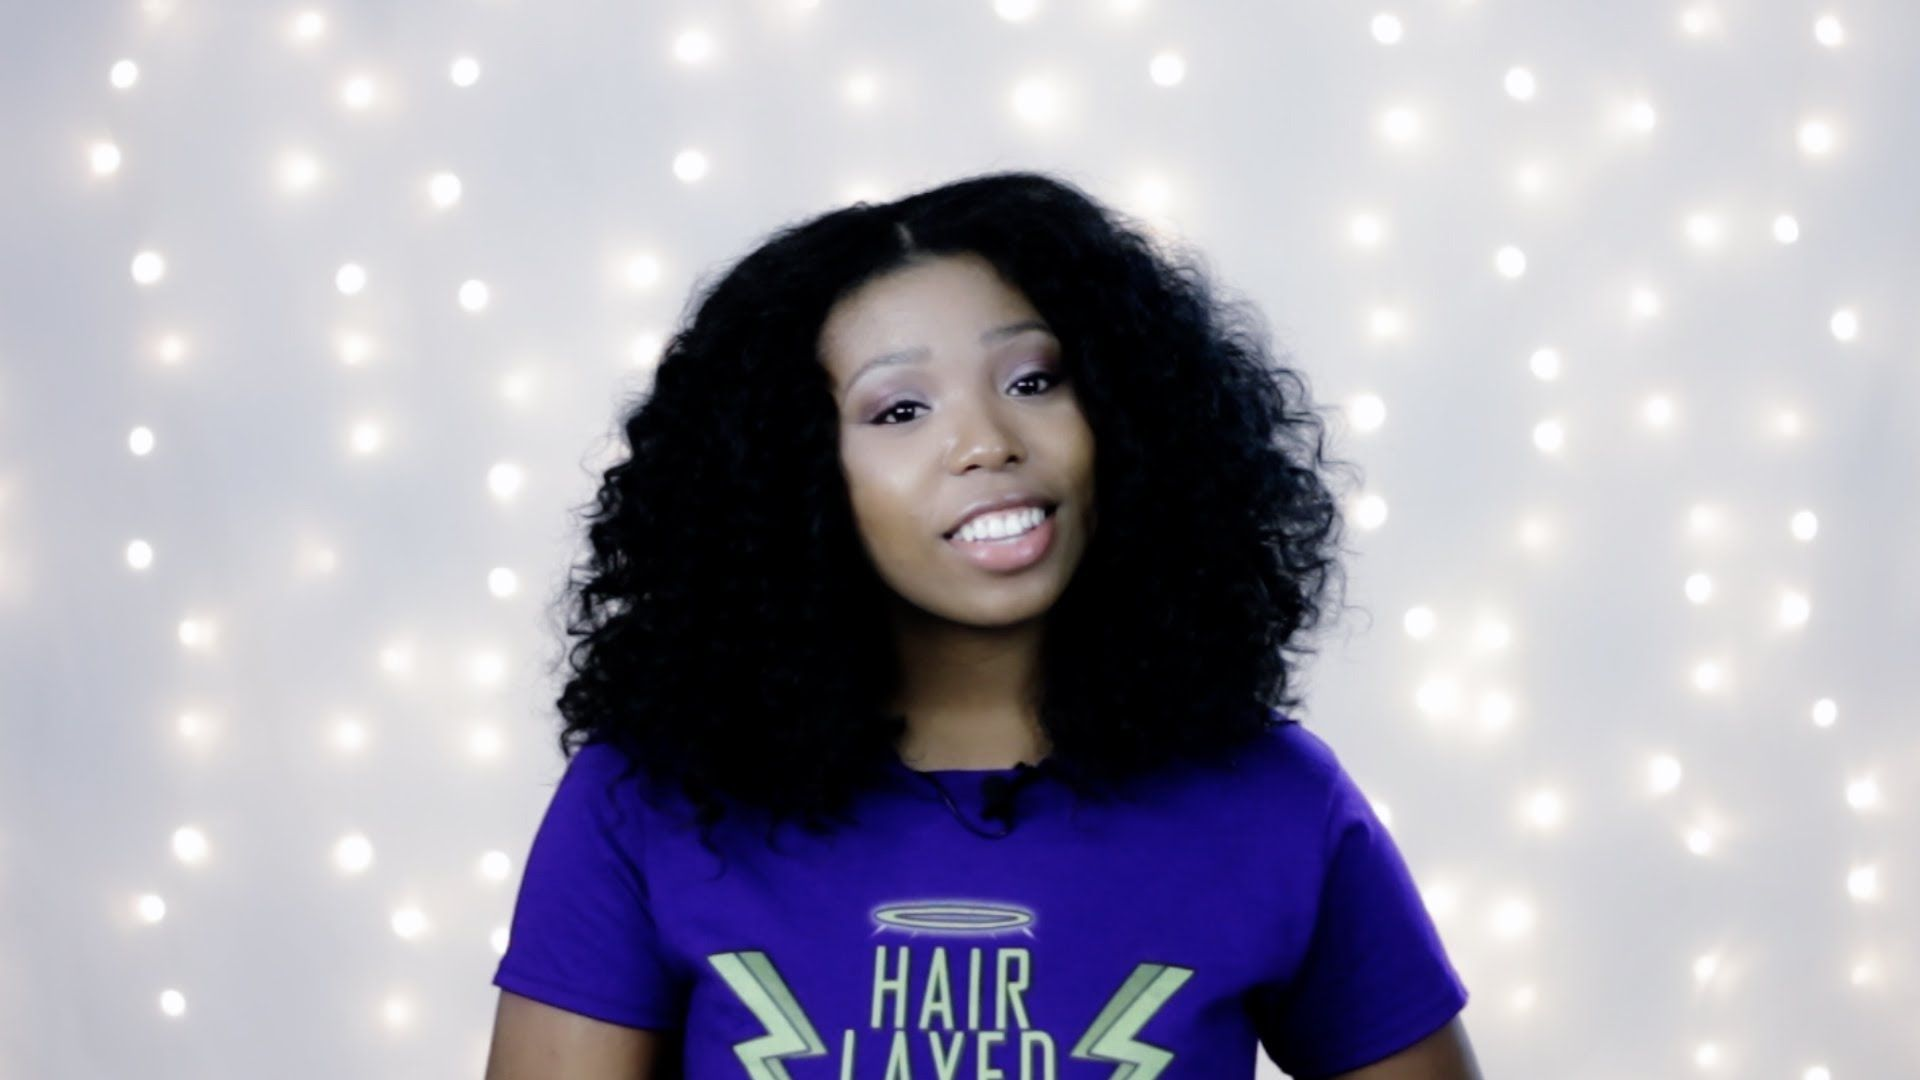 How Can I Stop My Hair From Shedding So Much?